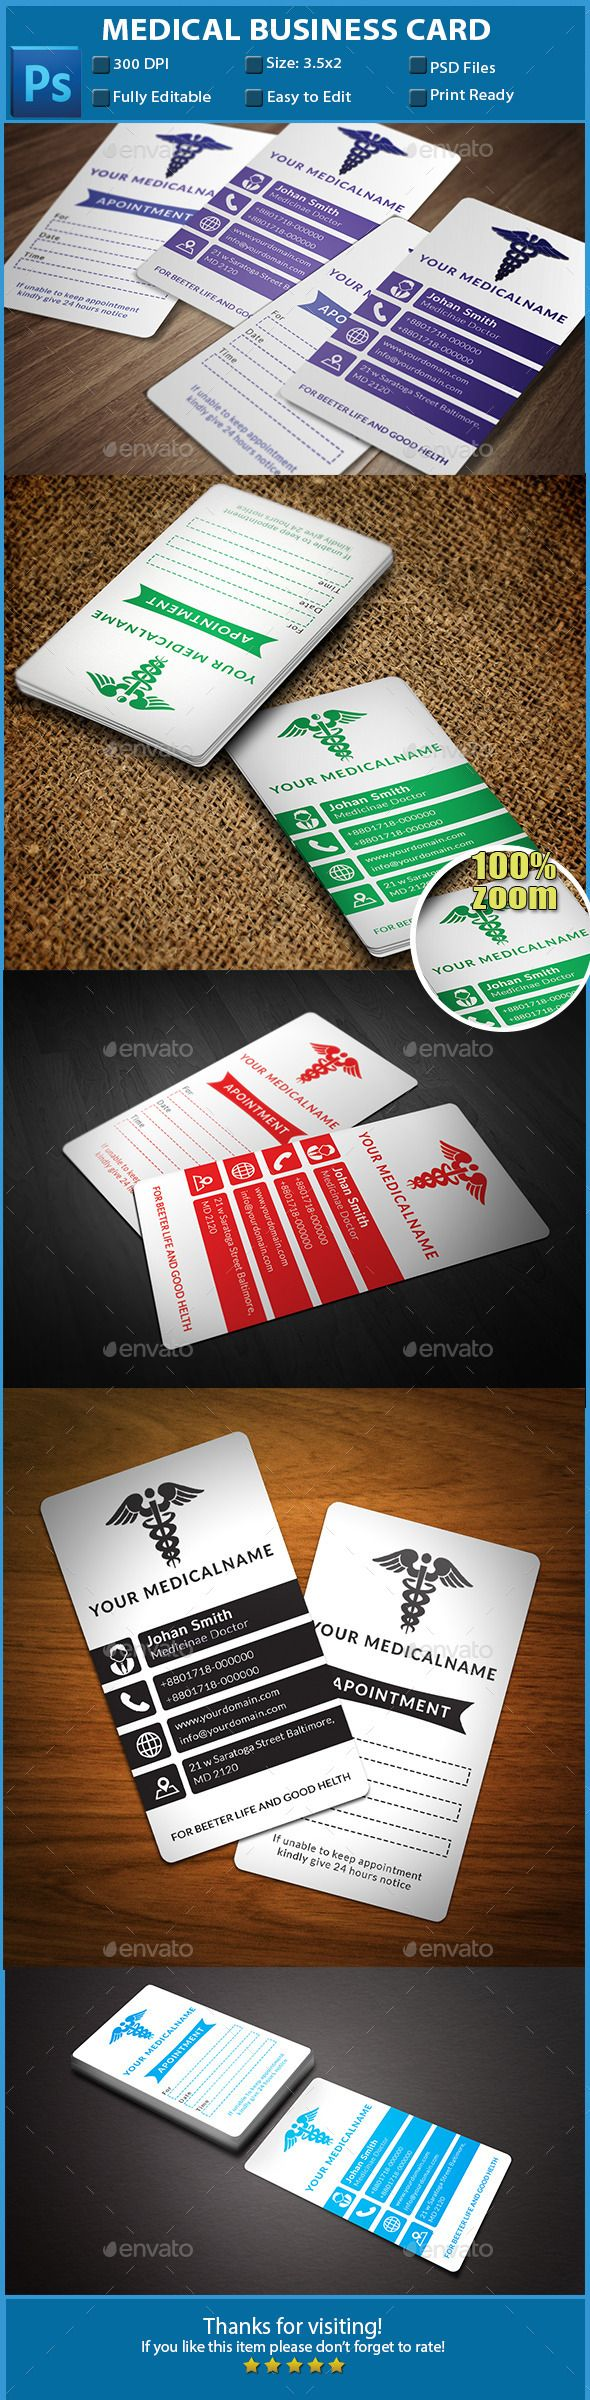 20 best Real Estate Business Cards images on Pinterest | Real ...